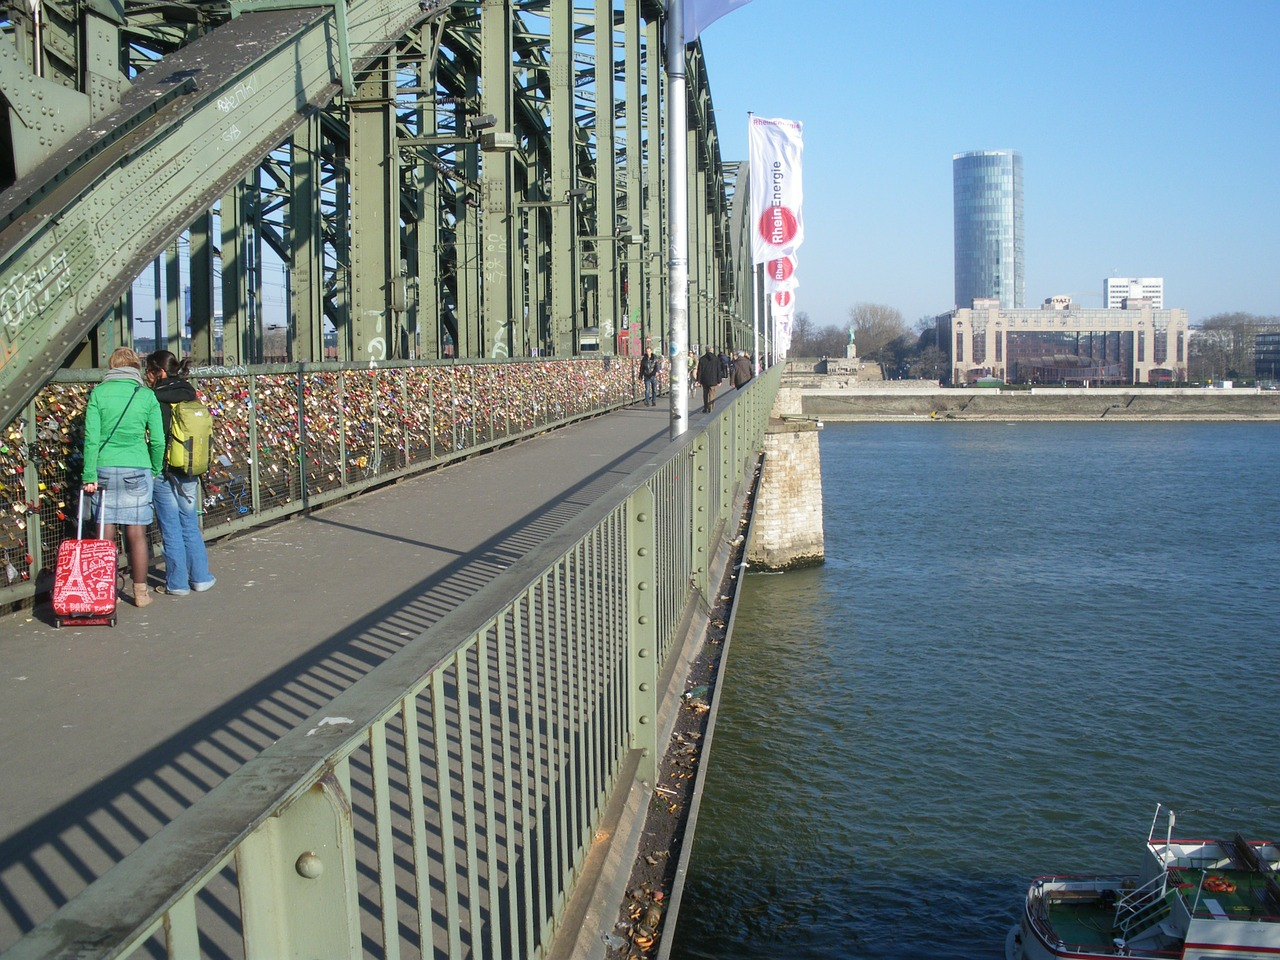 bridge he loved castles cologne free photo